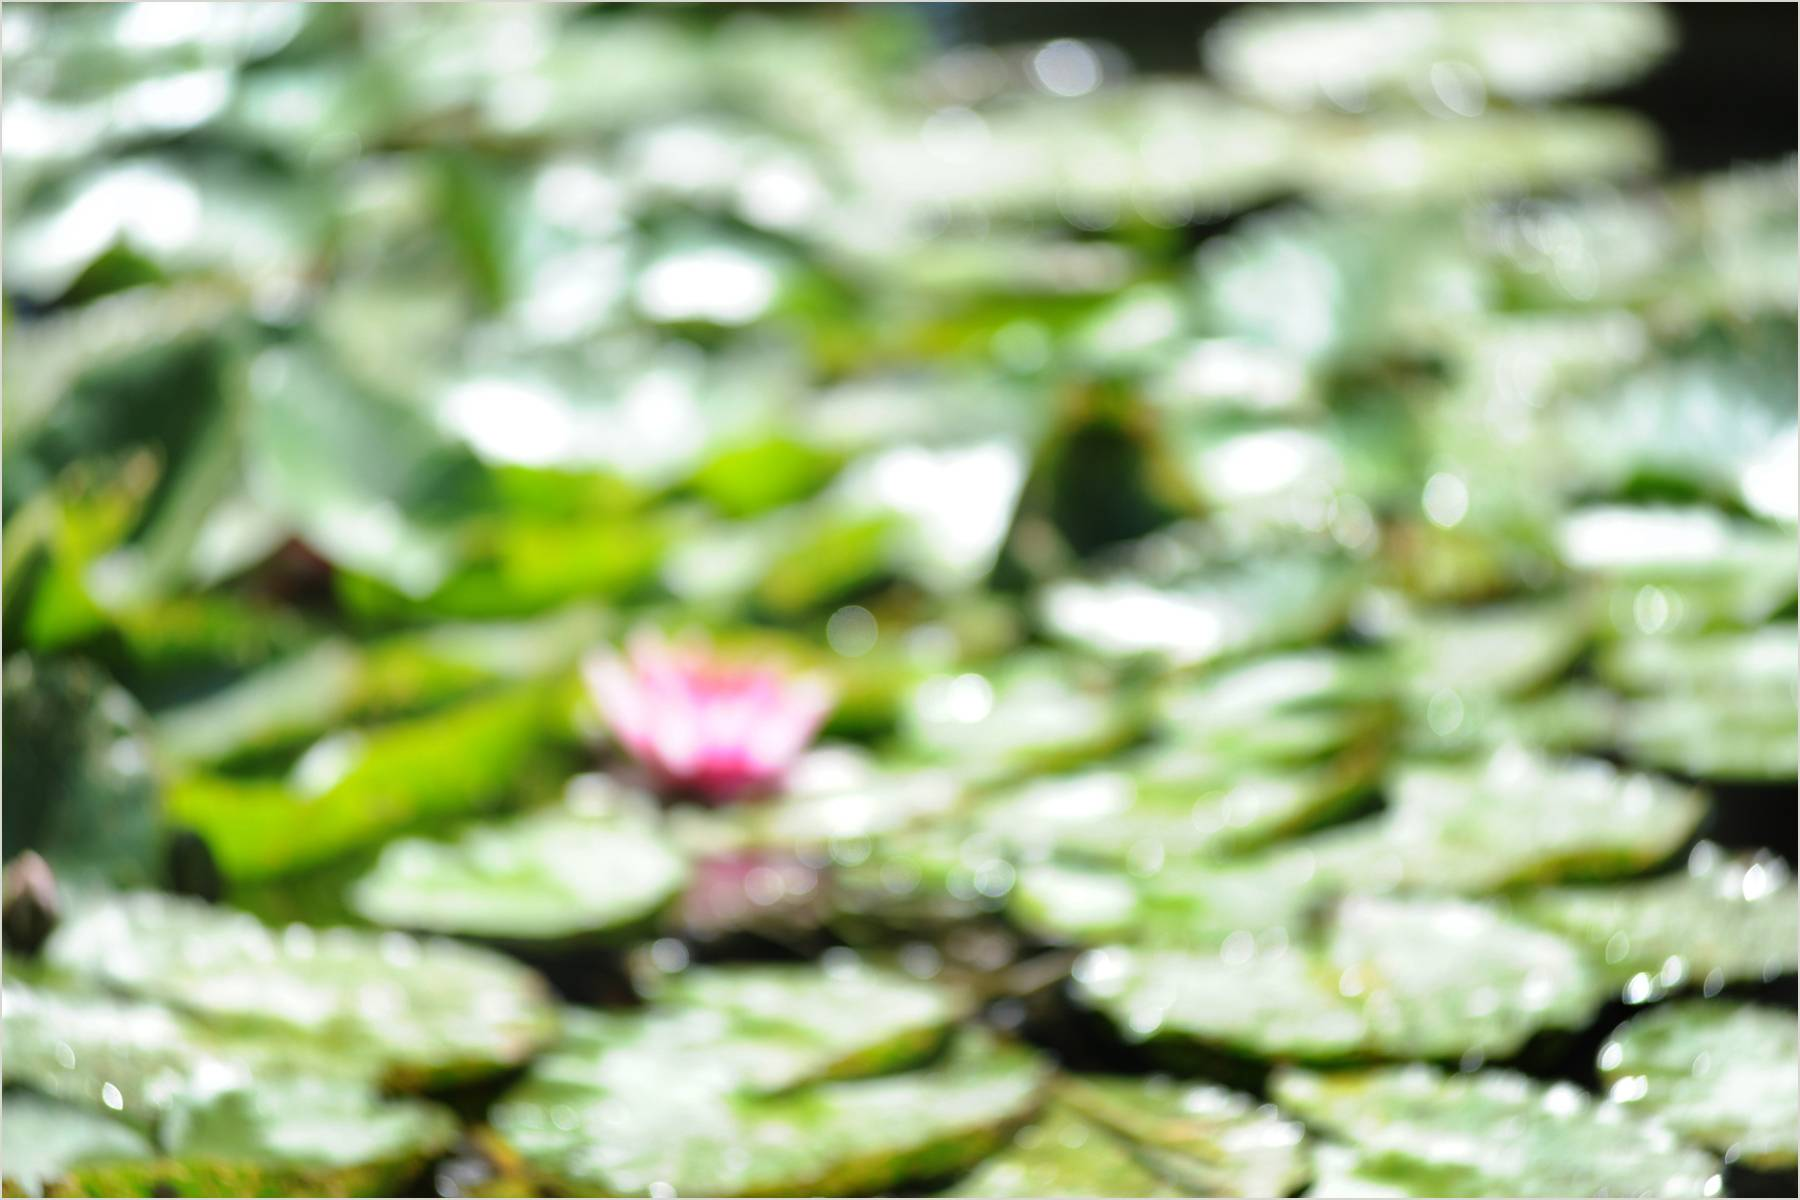 16_1giverny_lillies_rwl_7110_for_2012_website.jpg